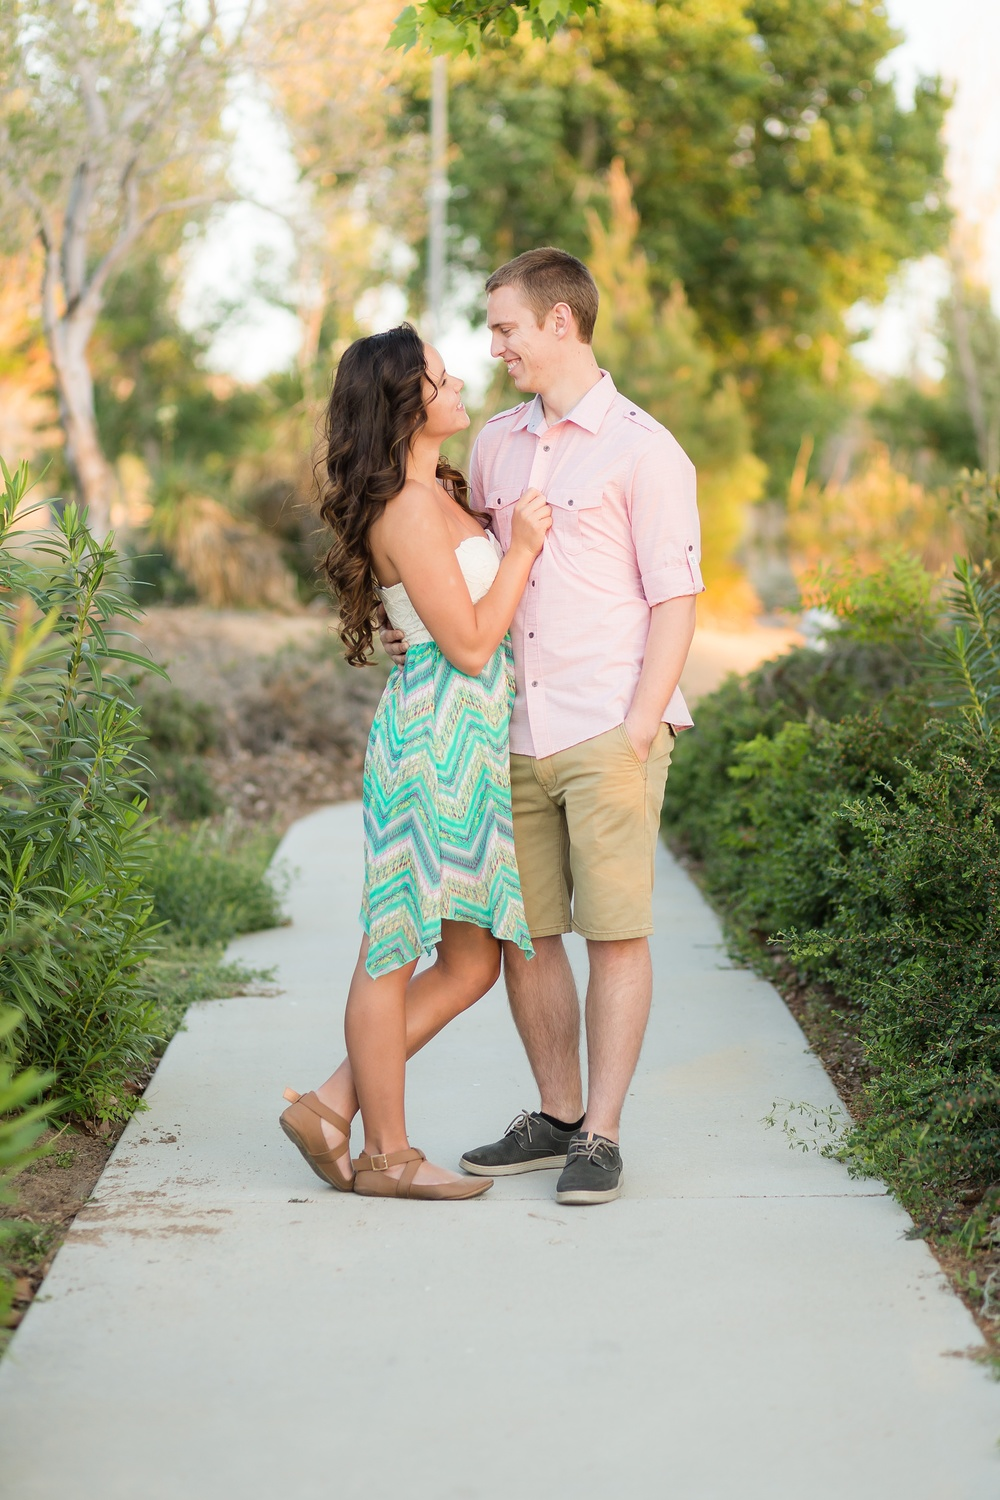 Should you invest in engagement photos? | Cinnamon Wolfe Photography | NJ & NYC